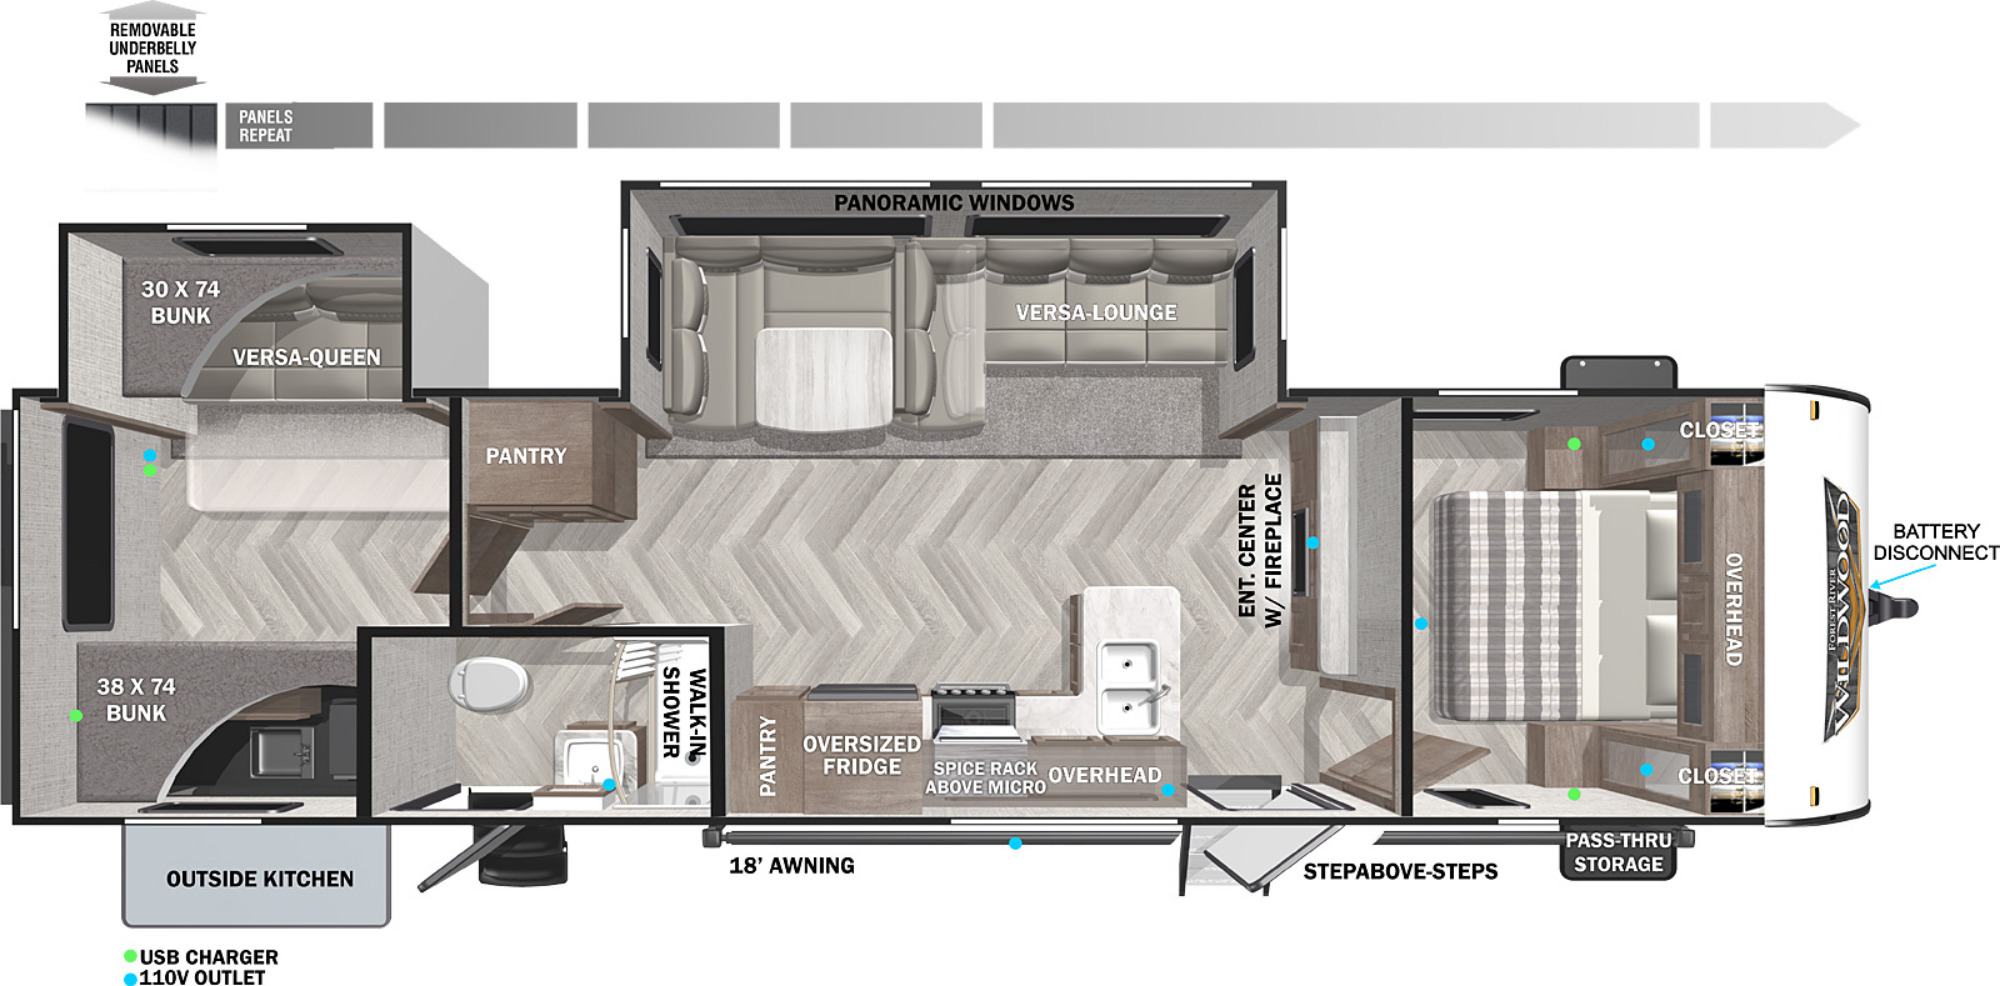 View Floor Plan for 2022 FOREST RIVER WILDWOOD 32BHDS